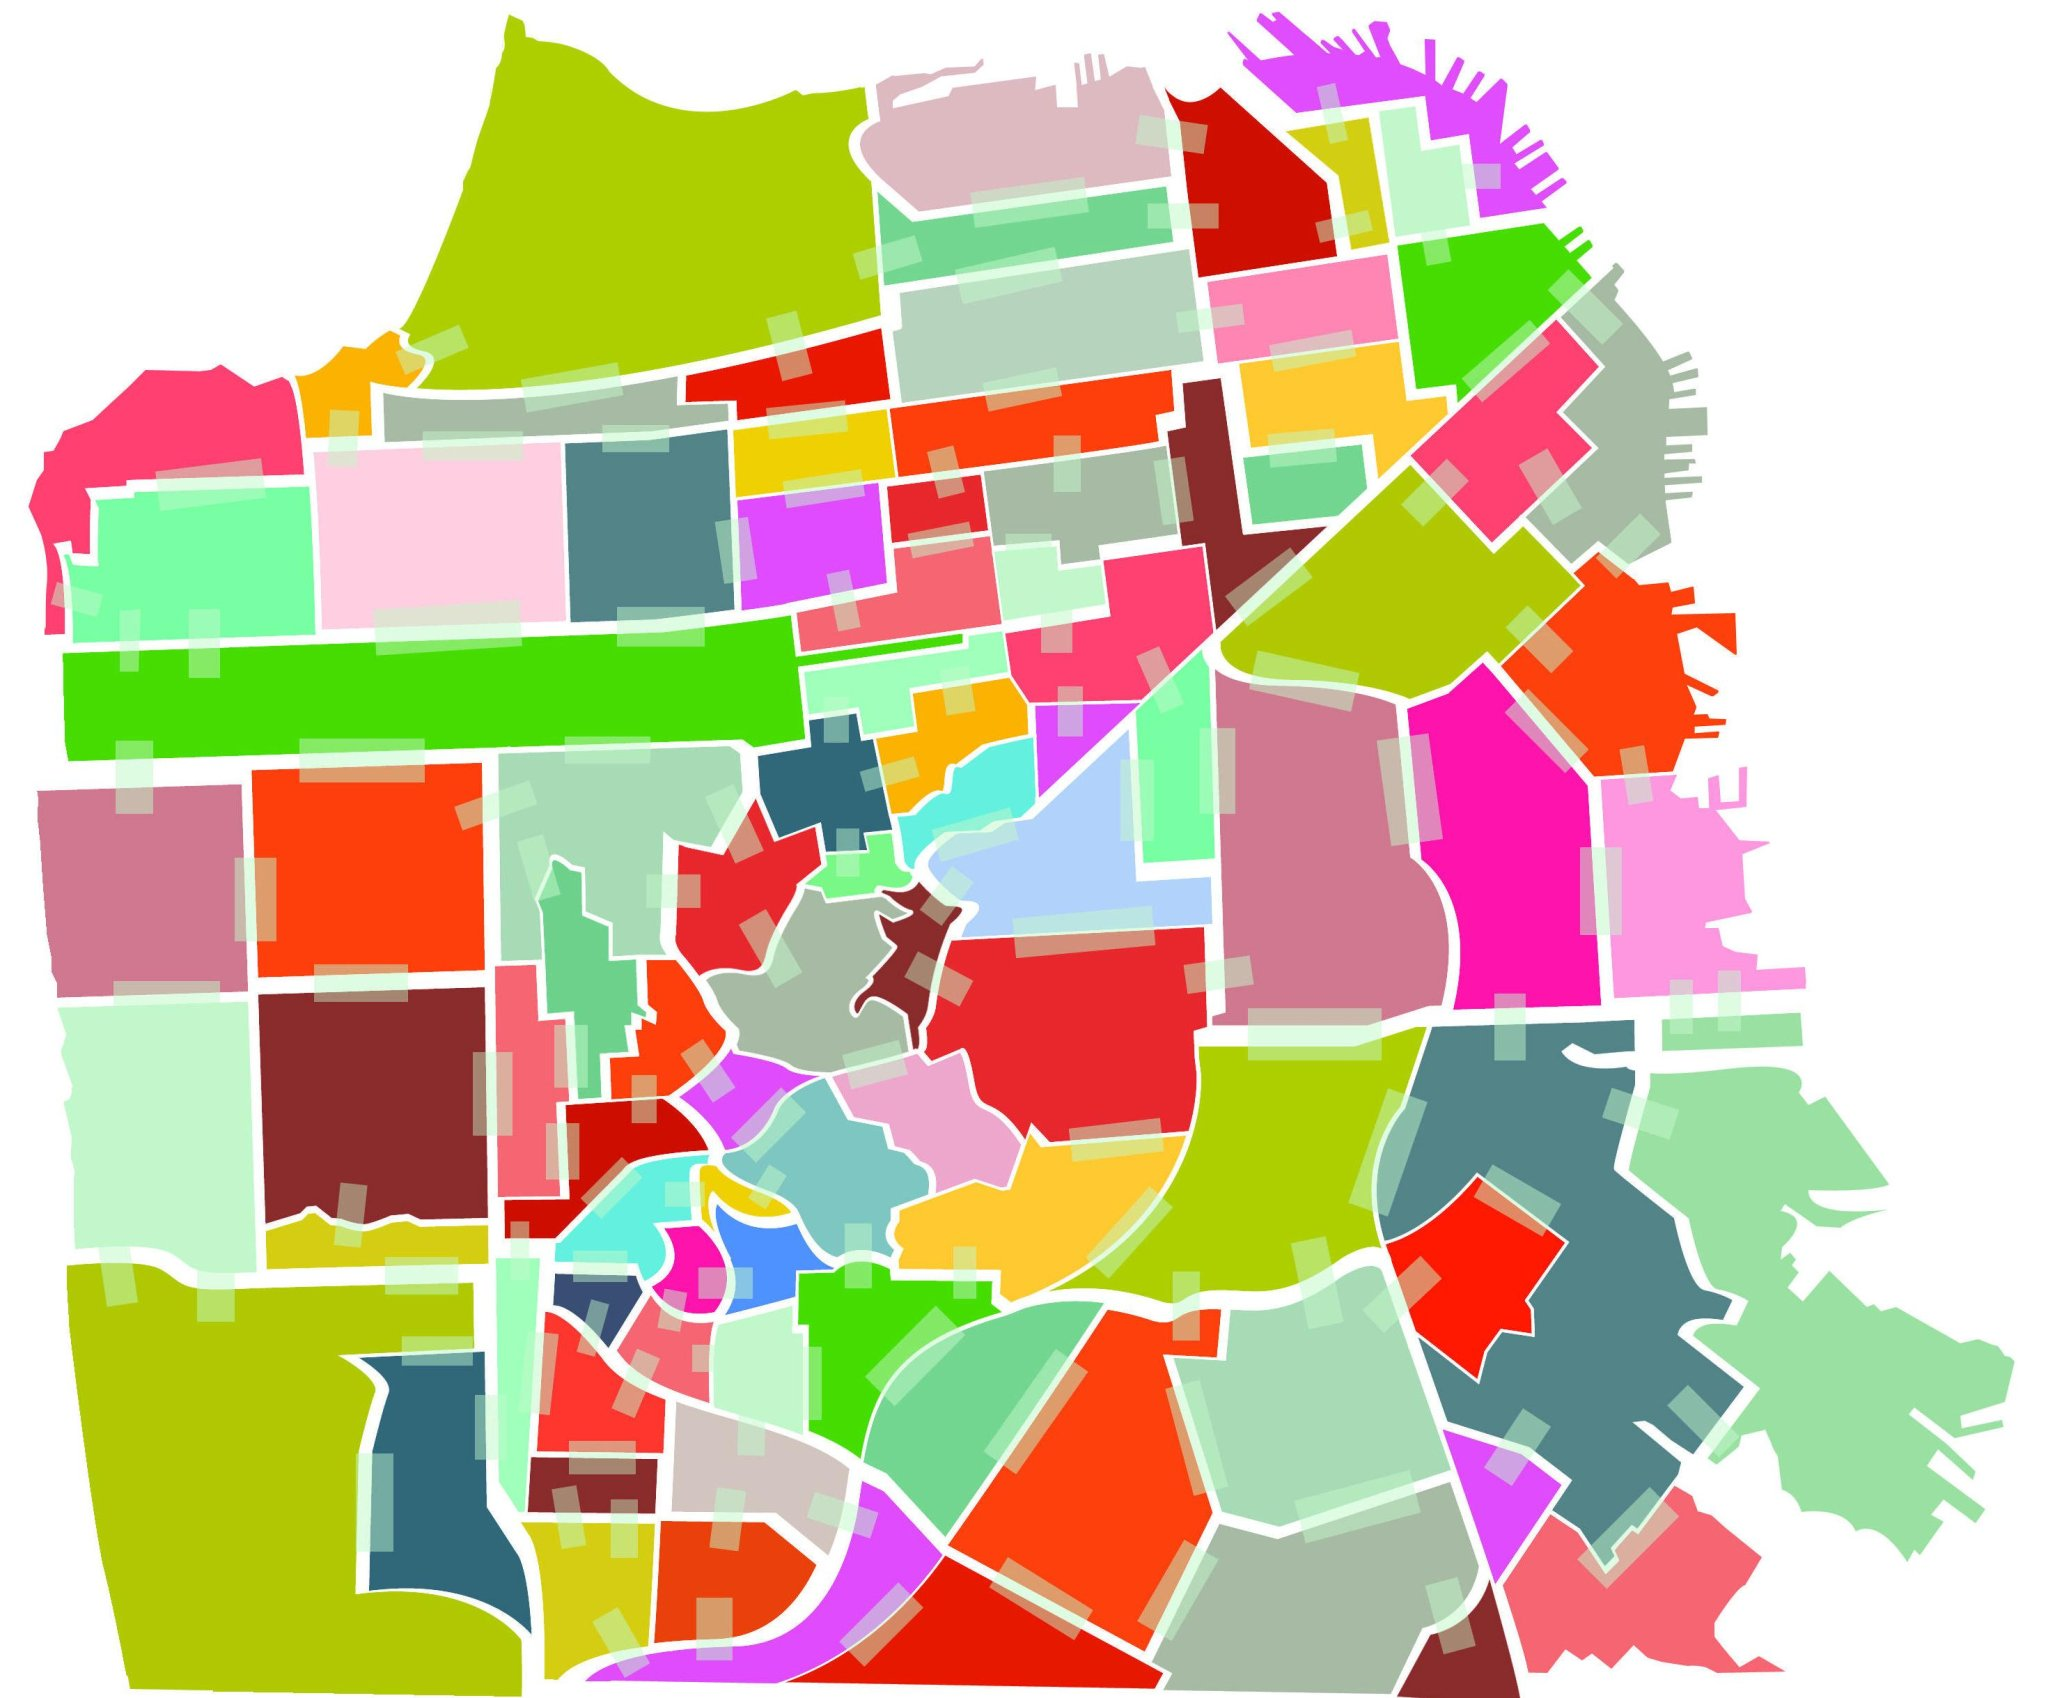 S F Neighborhoods Change Names To Map Out New Identity Sfgate